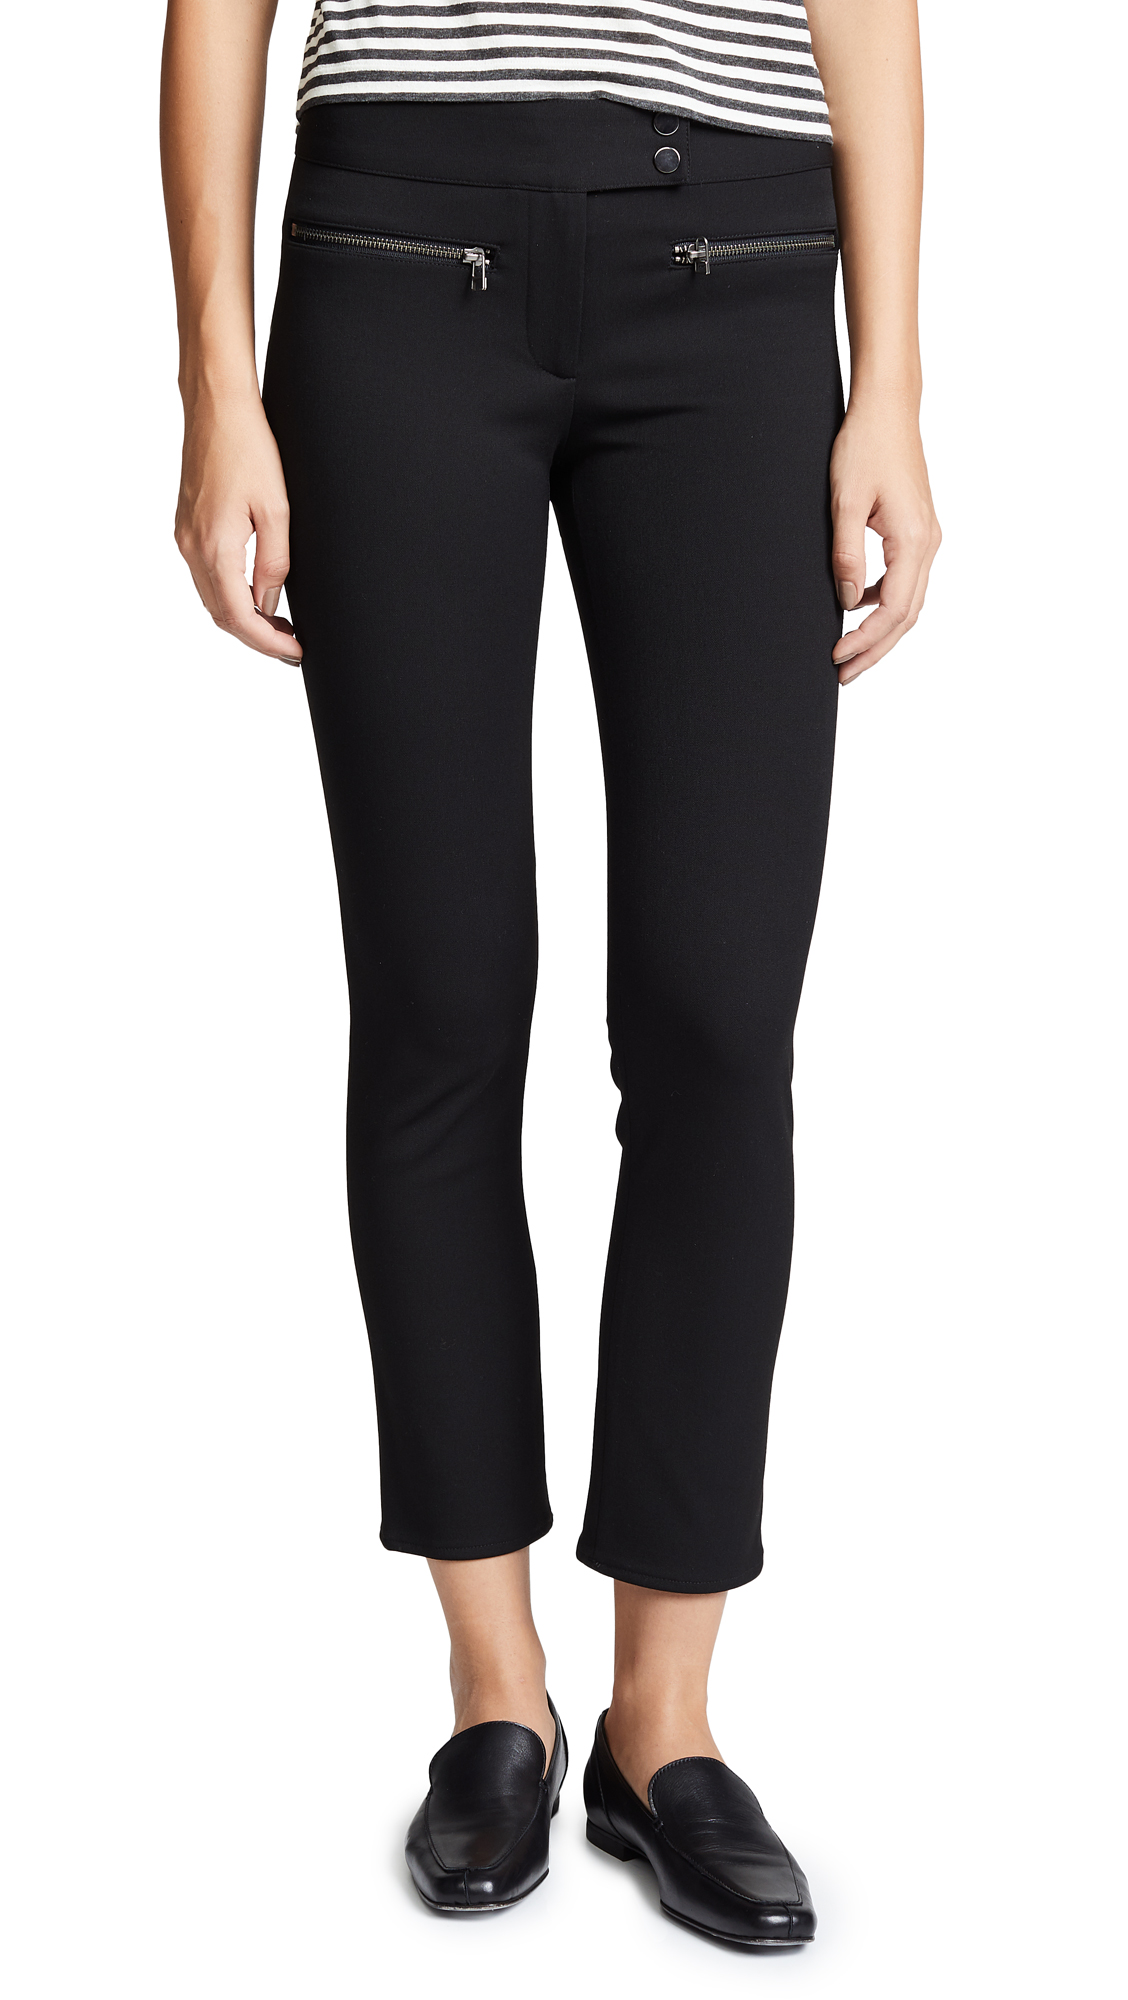 Metro Pants in Black